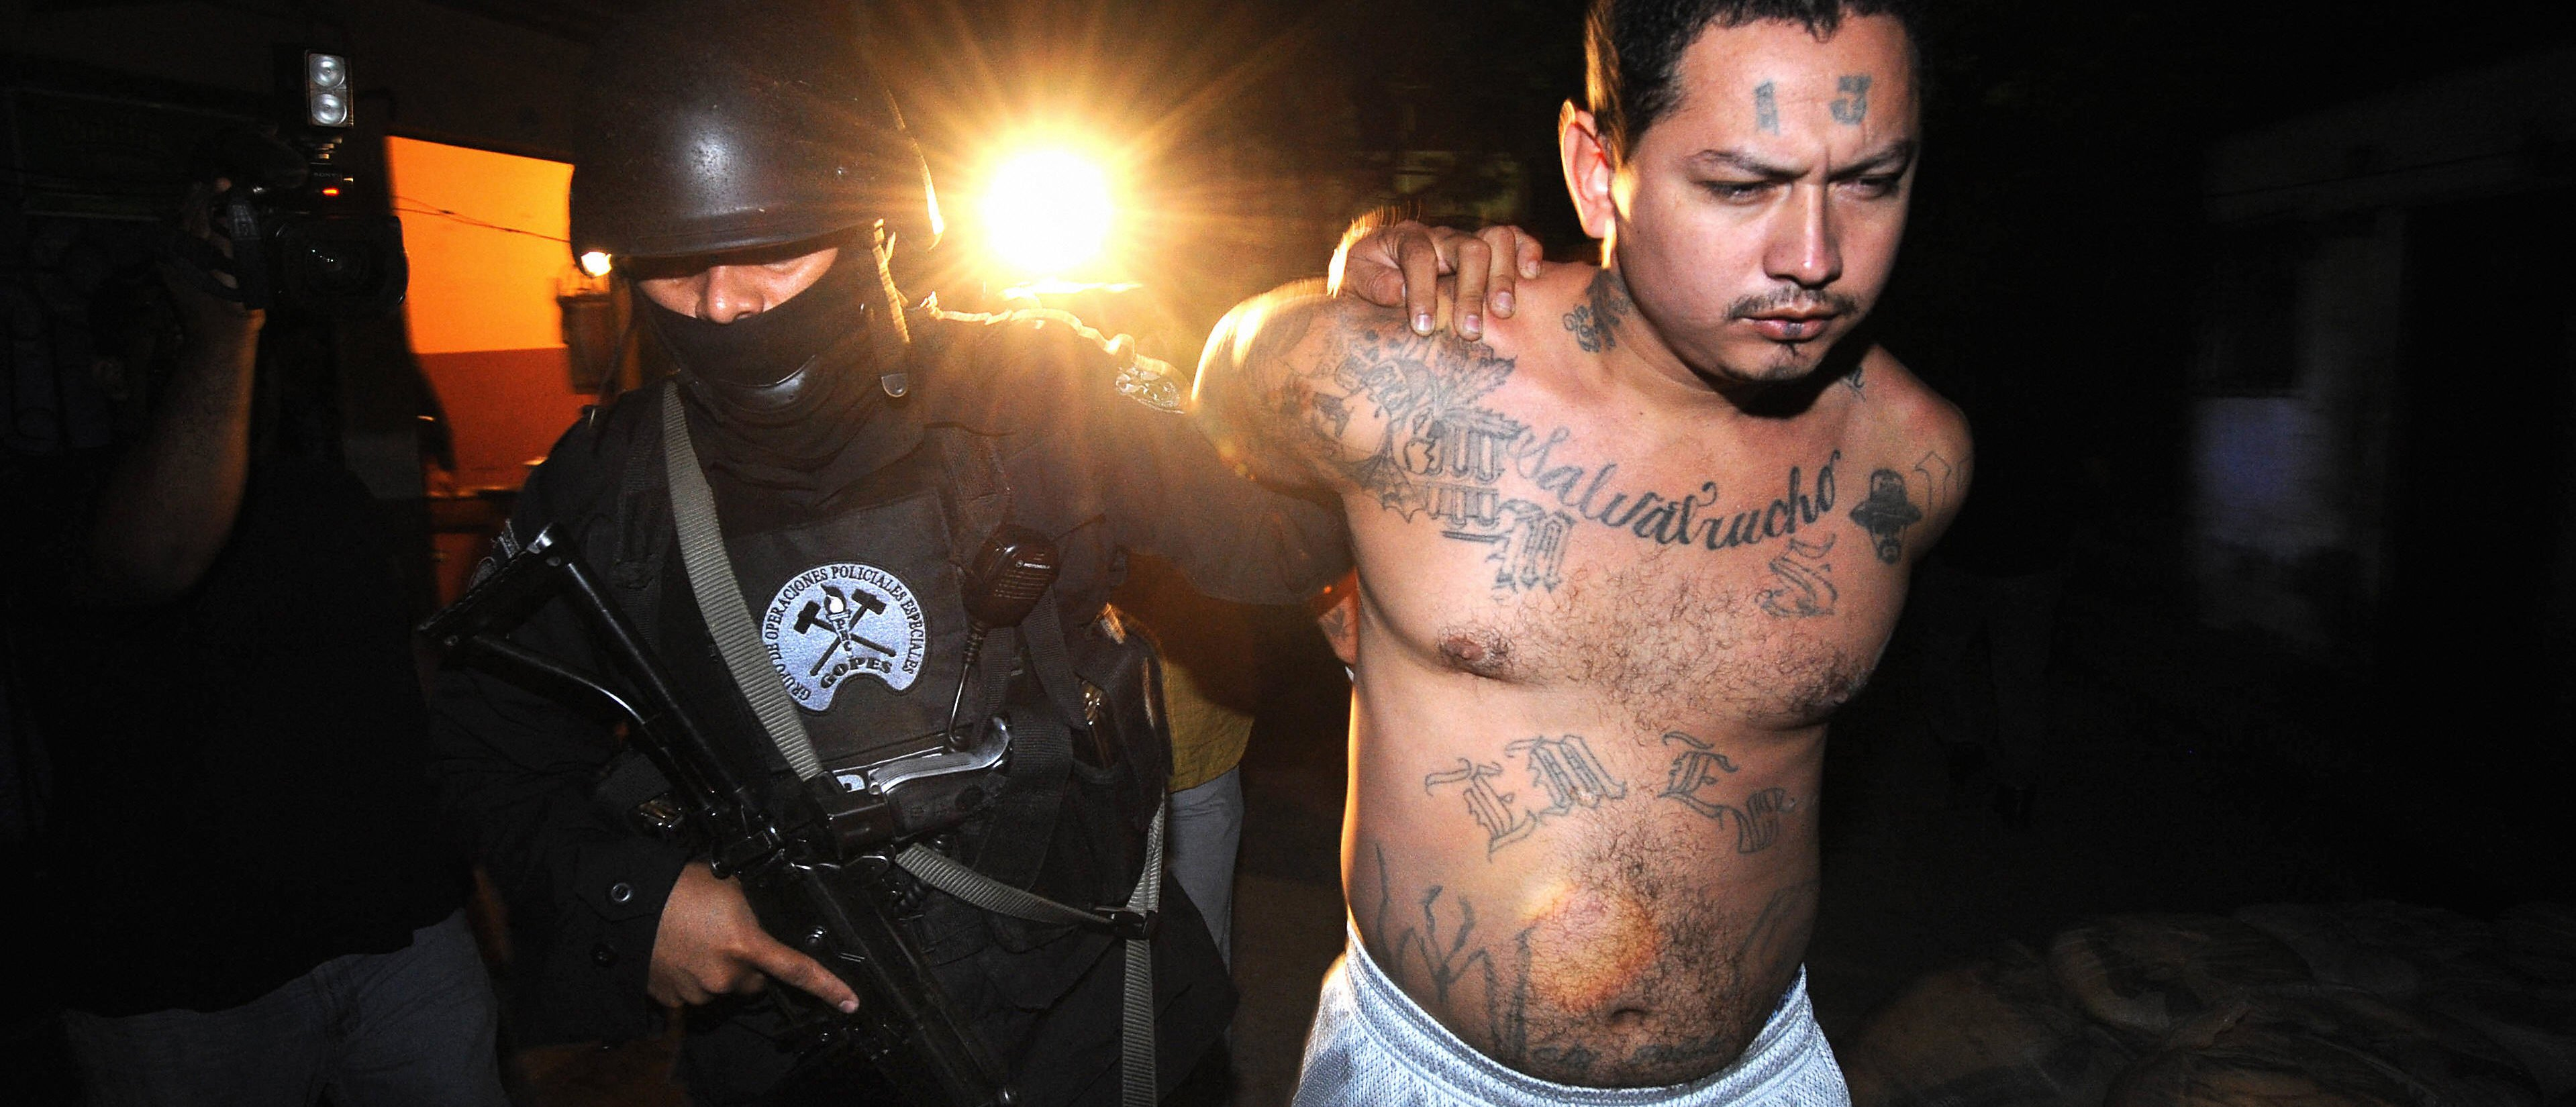 16 MS-13 Gang Members Indicted, Some For Initiation Related Assaults